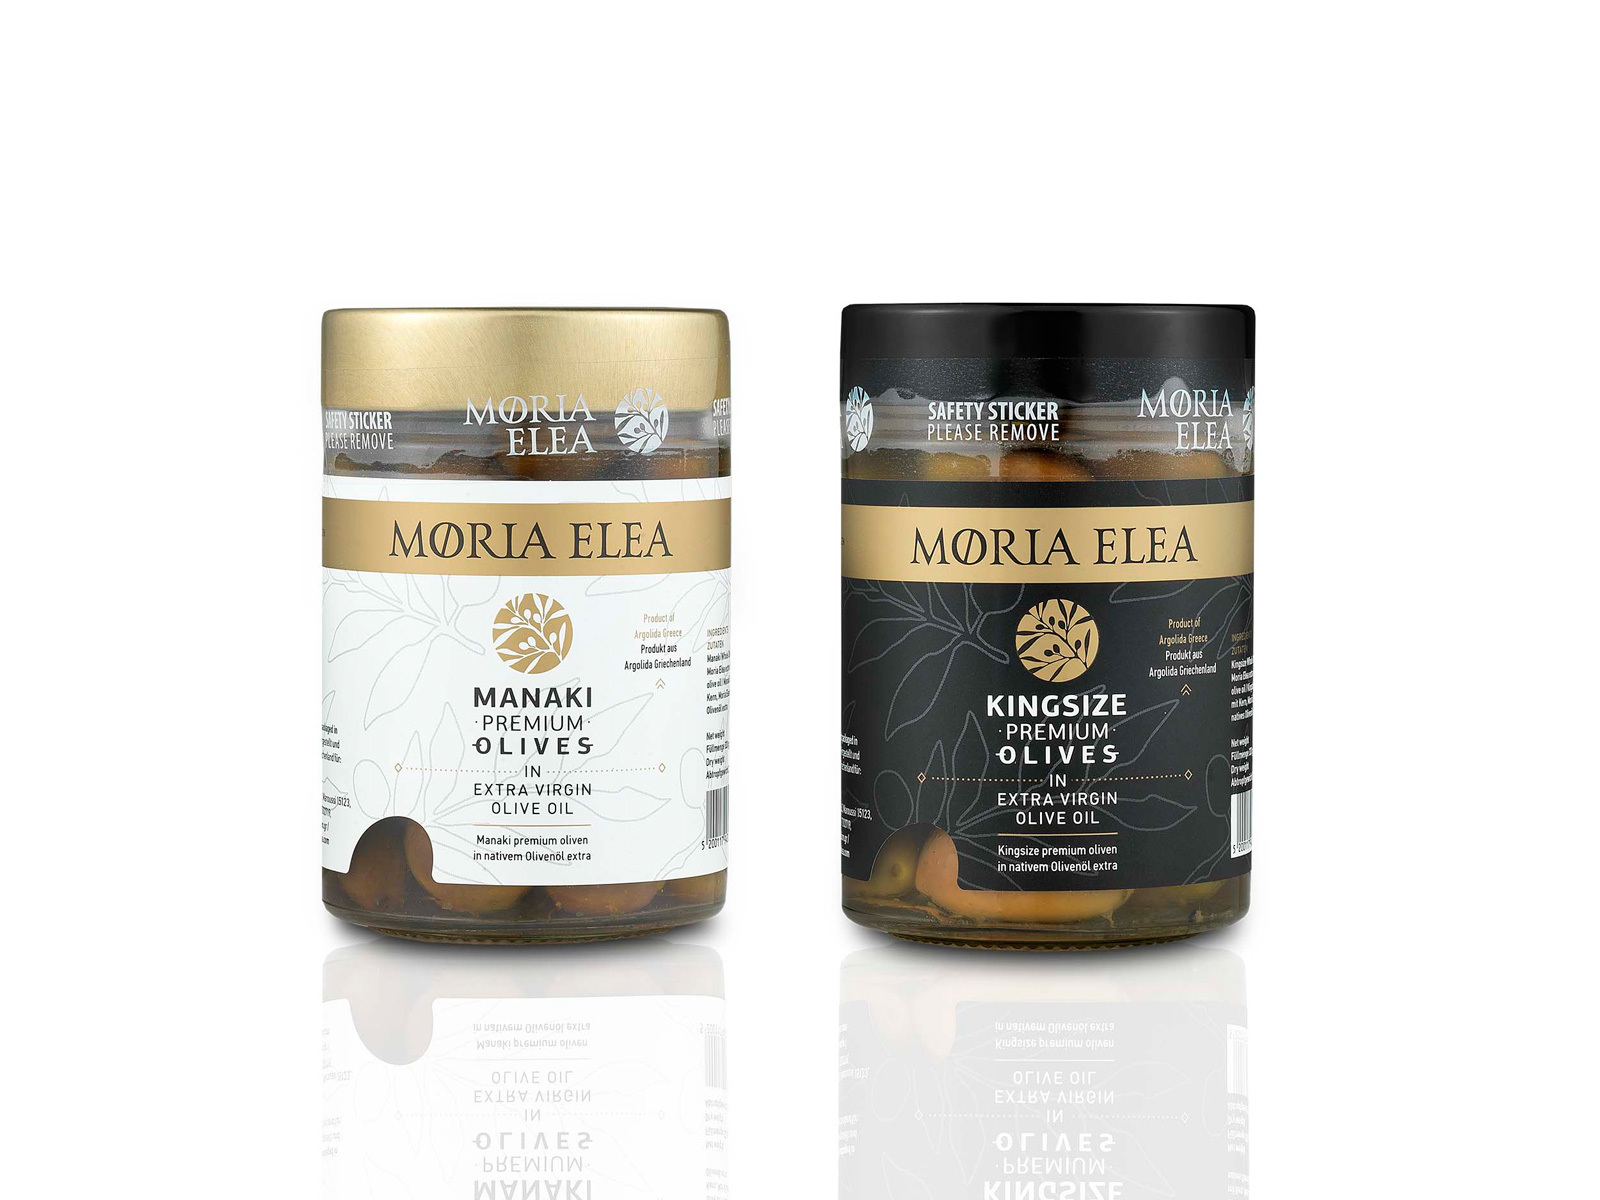 New Moria Elea Premium Olives in EVOO